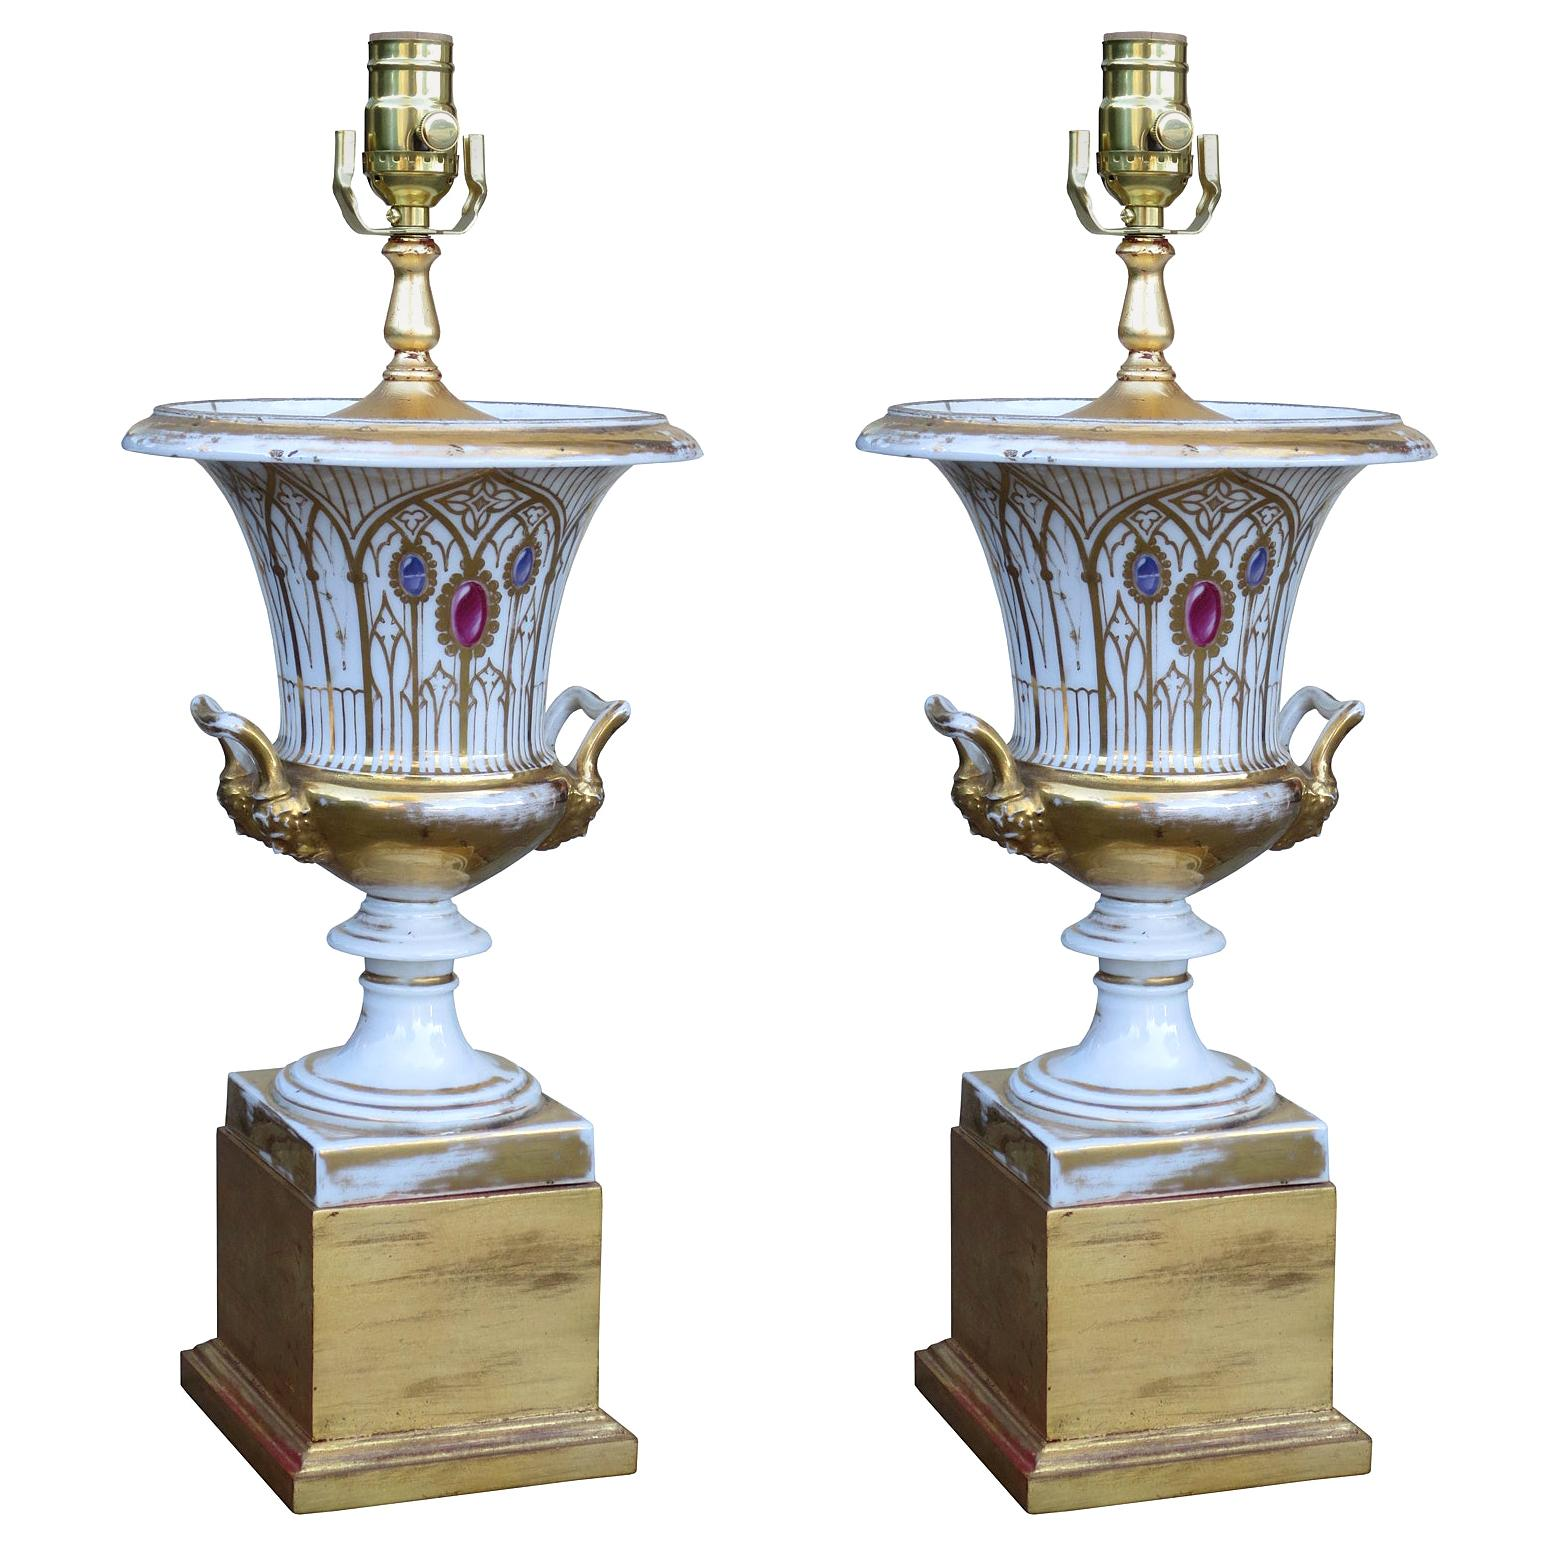 Pair of 19th-20th Century Old Paris Porcelain Urns as Lamps, Custom Gilt Bases